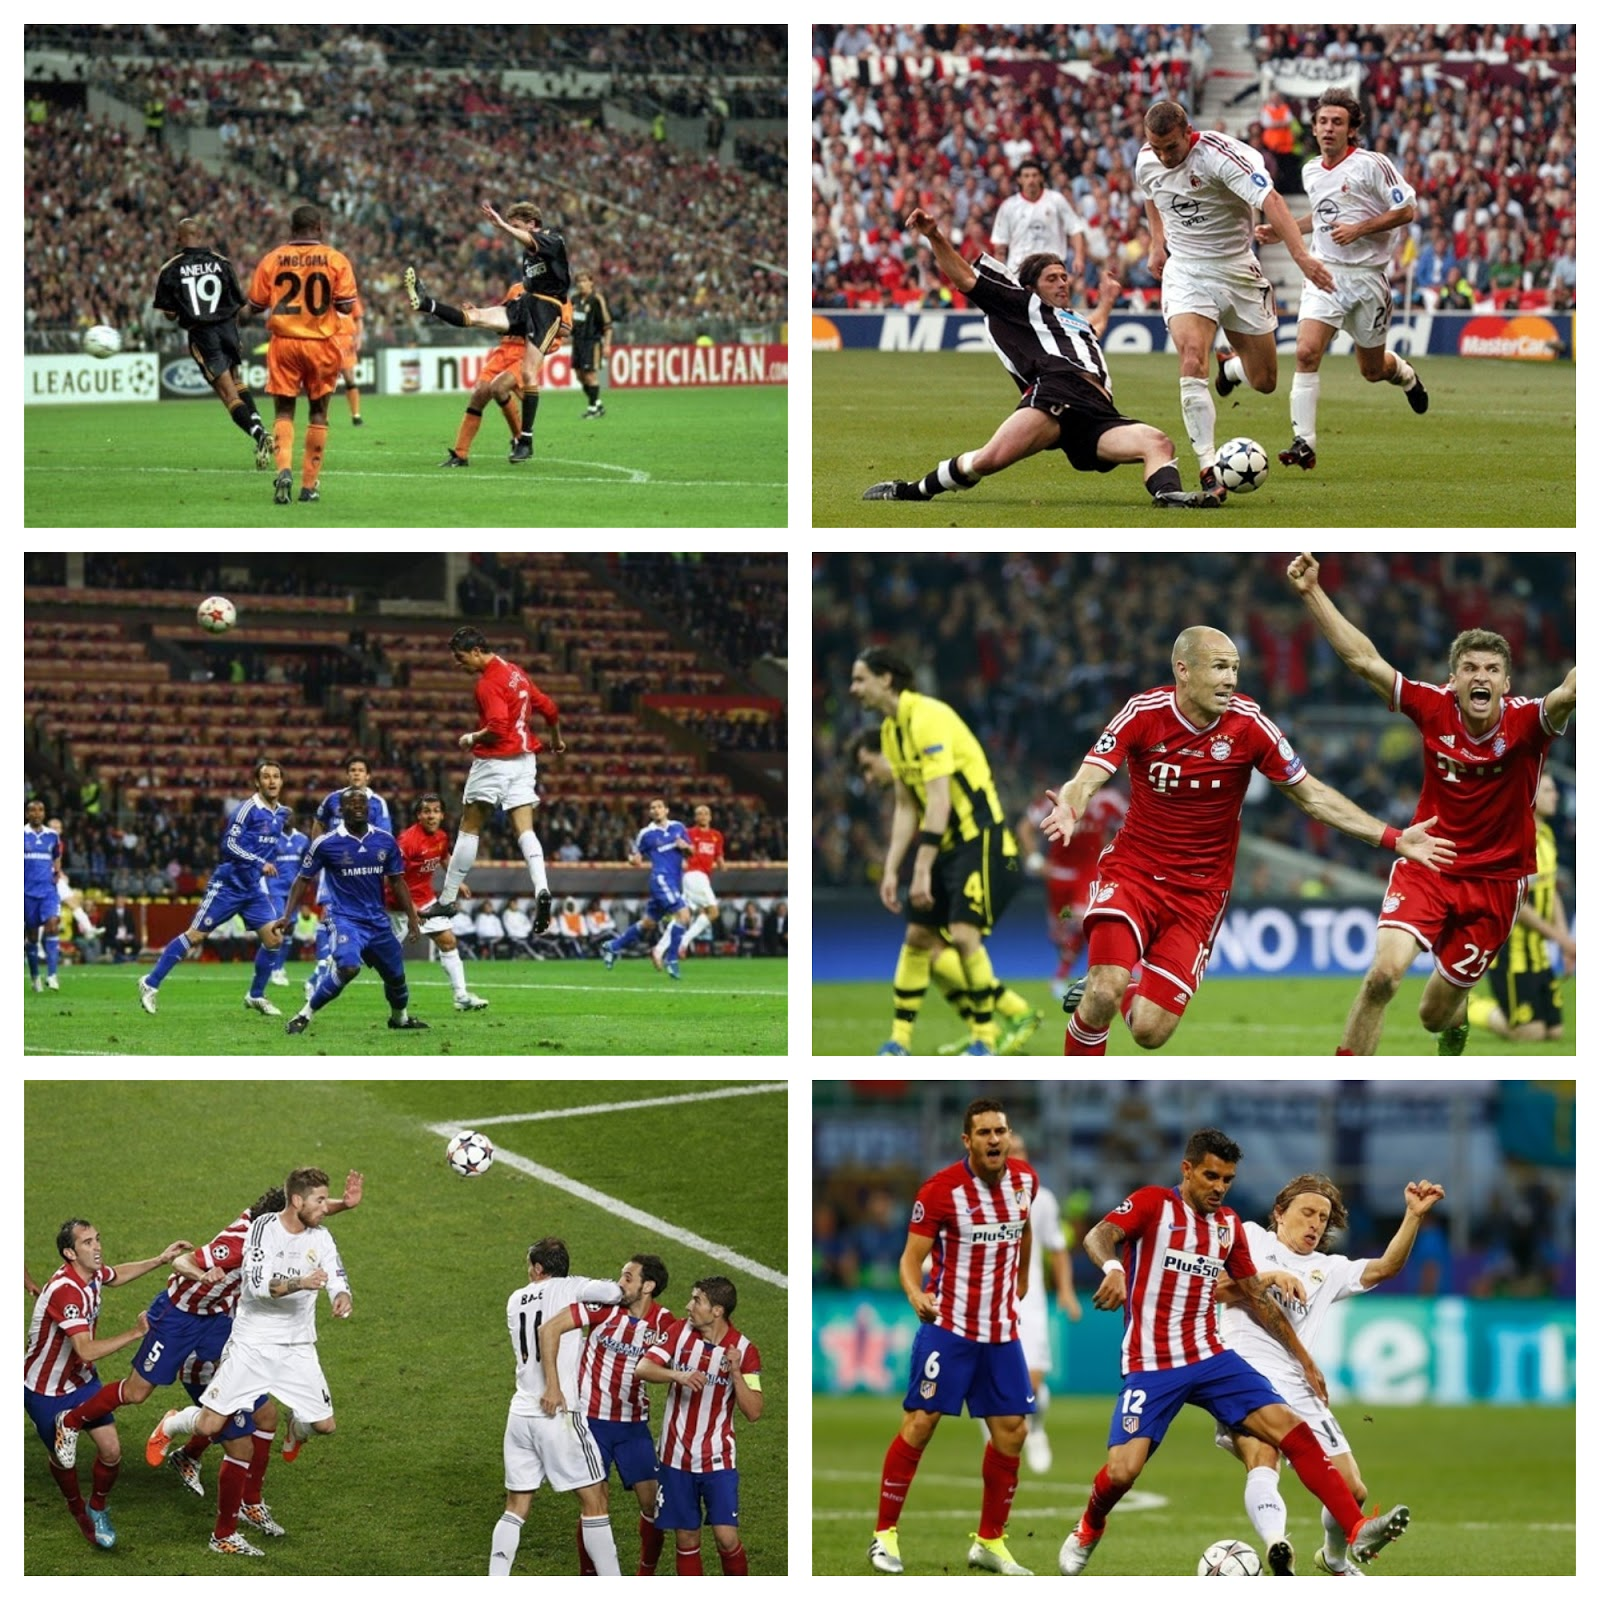 Champions League Final 2012: 2019 UEFA Champions League Final: An All-English Affair